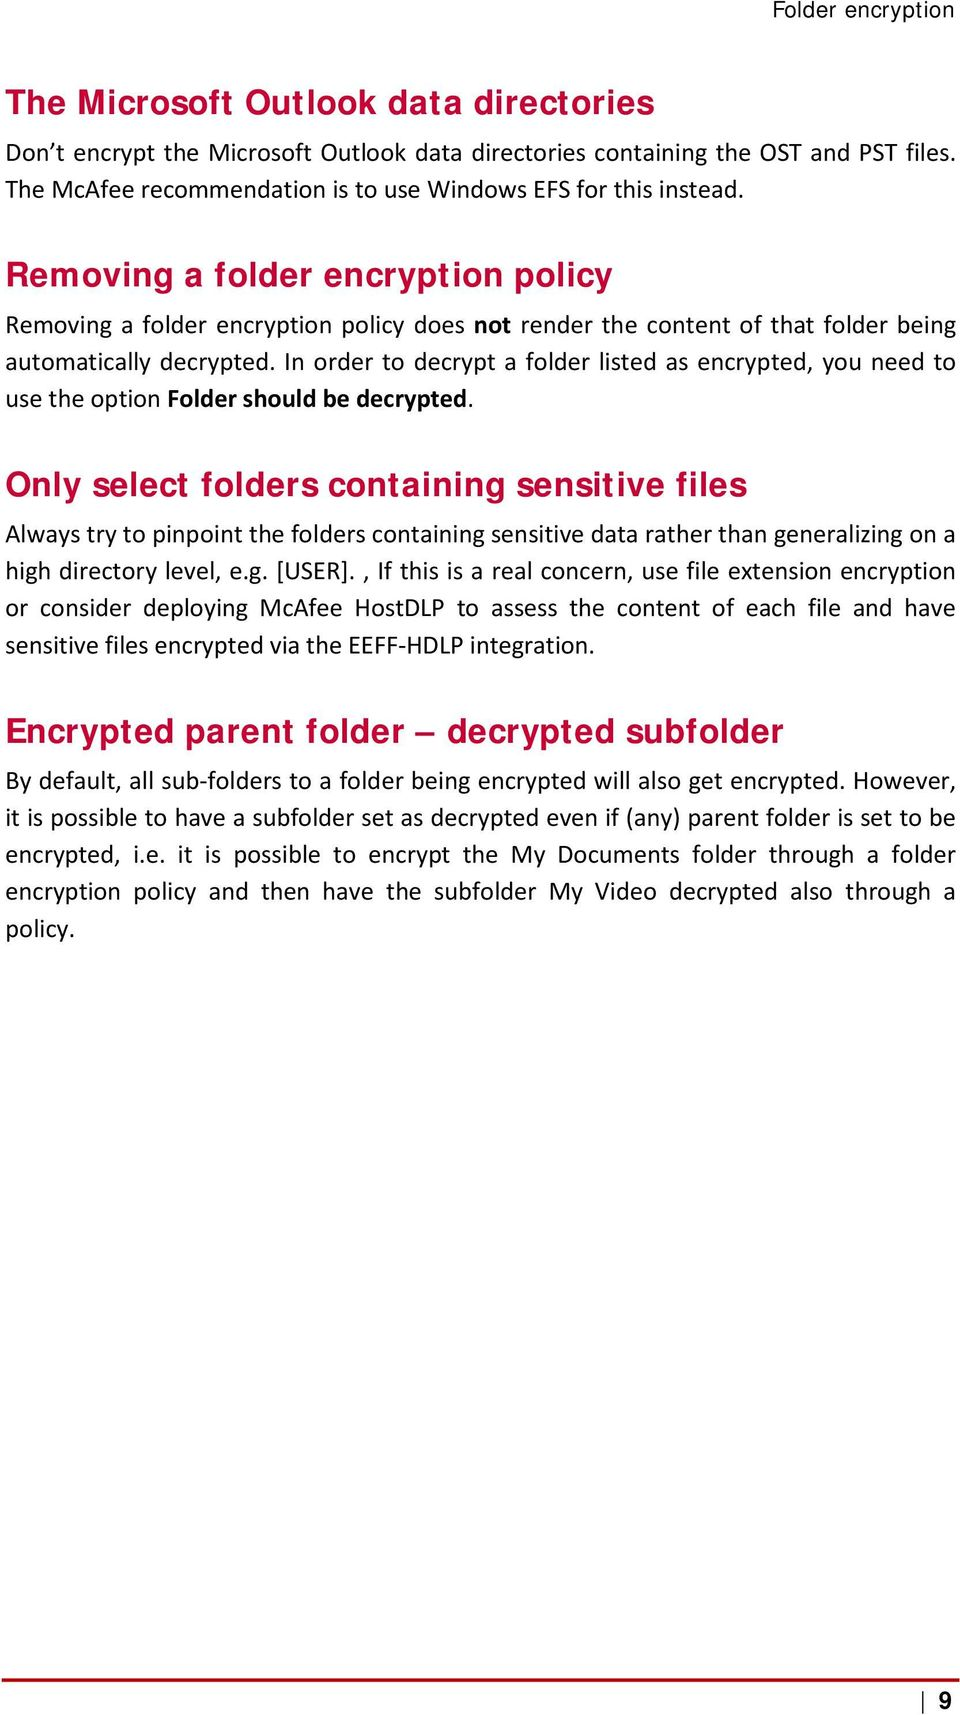 Mcafee Endpoint Encryption For Files And Folders Best Practices